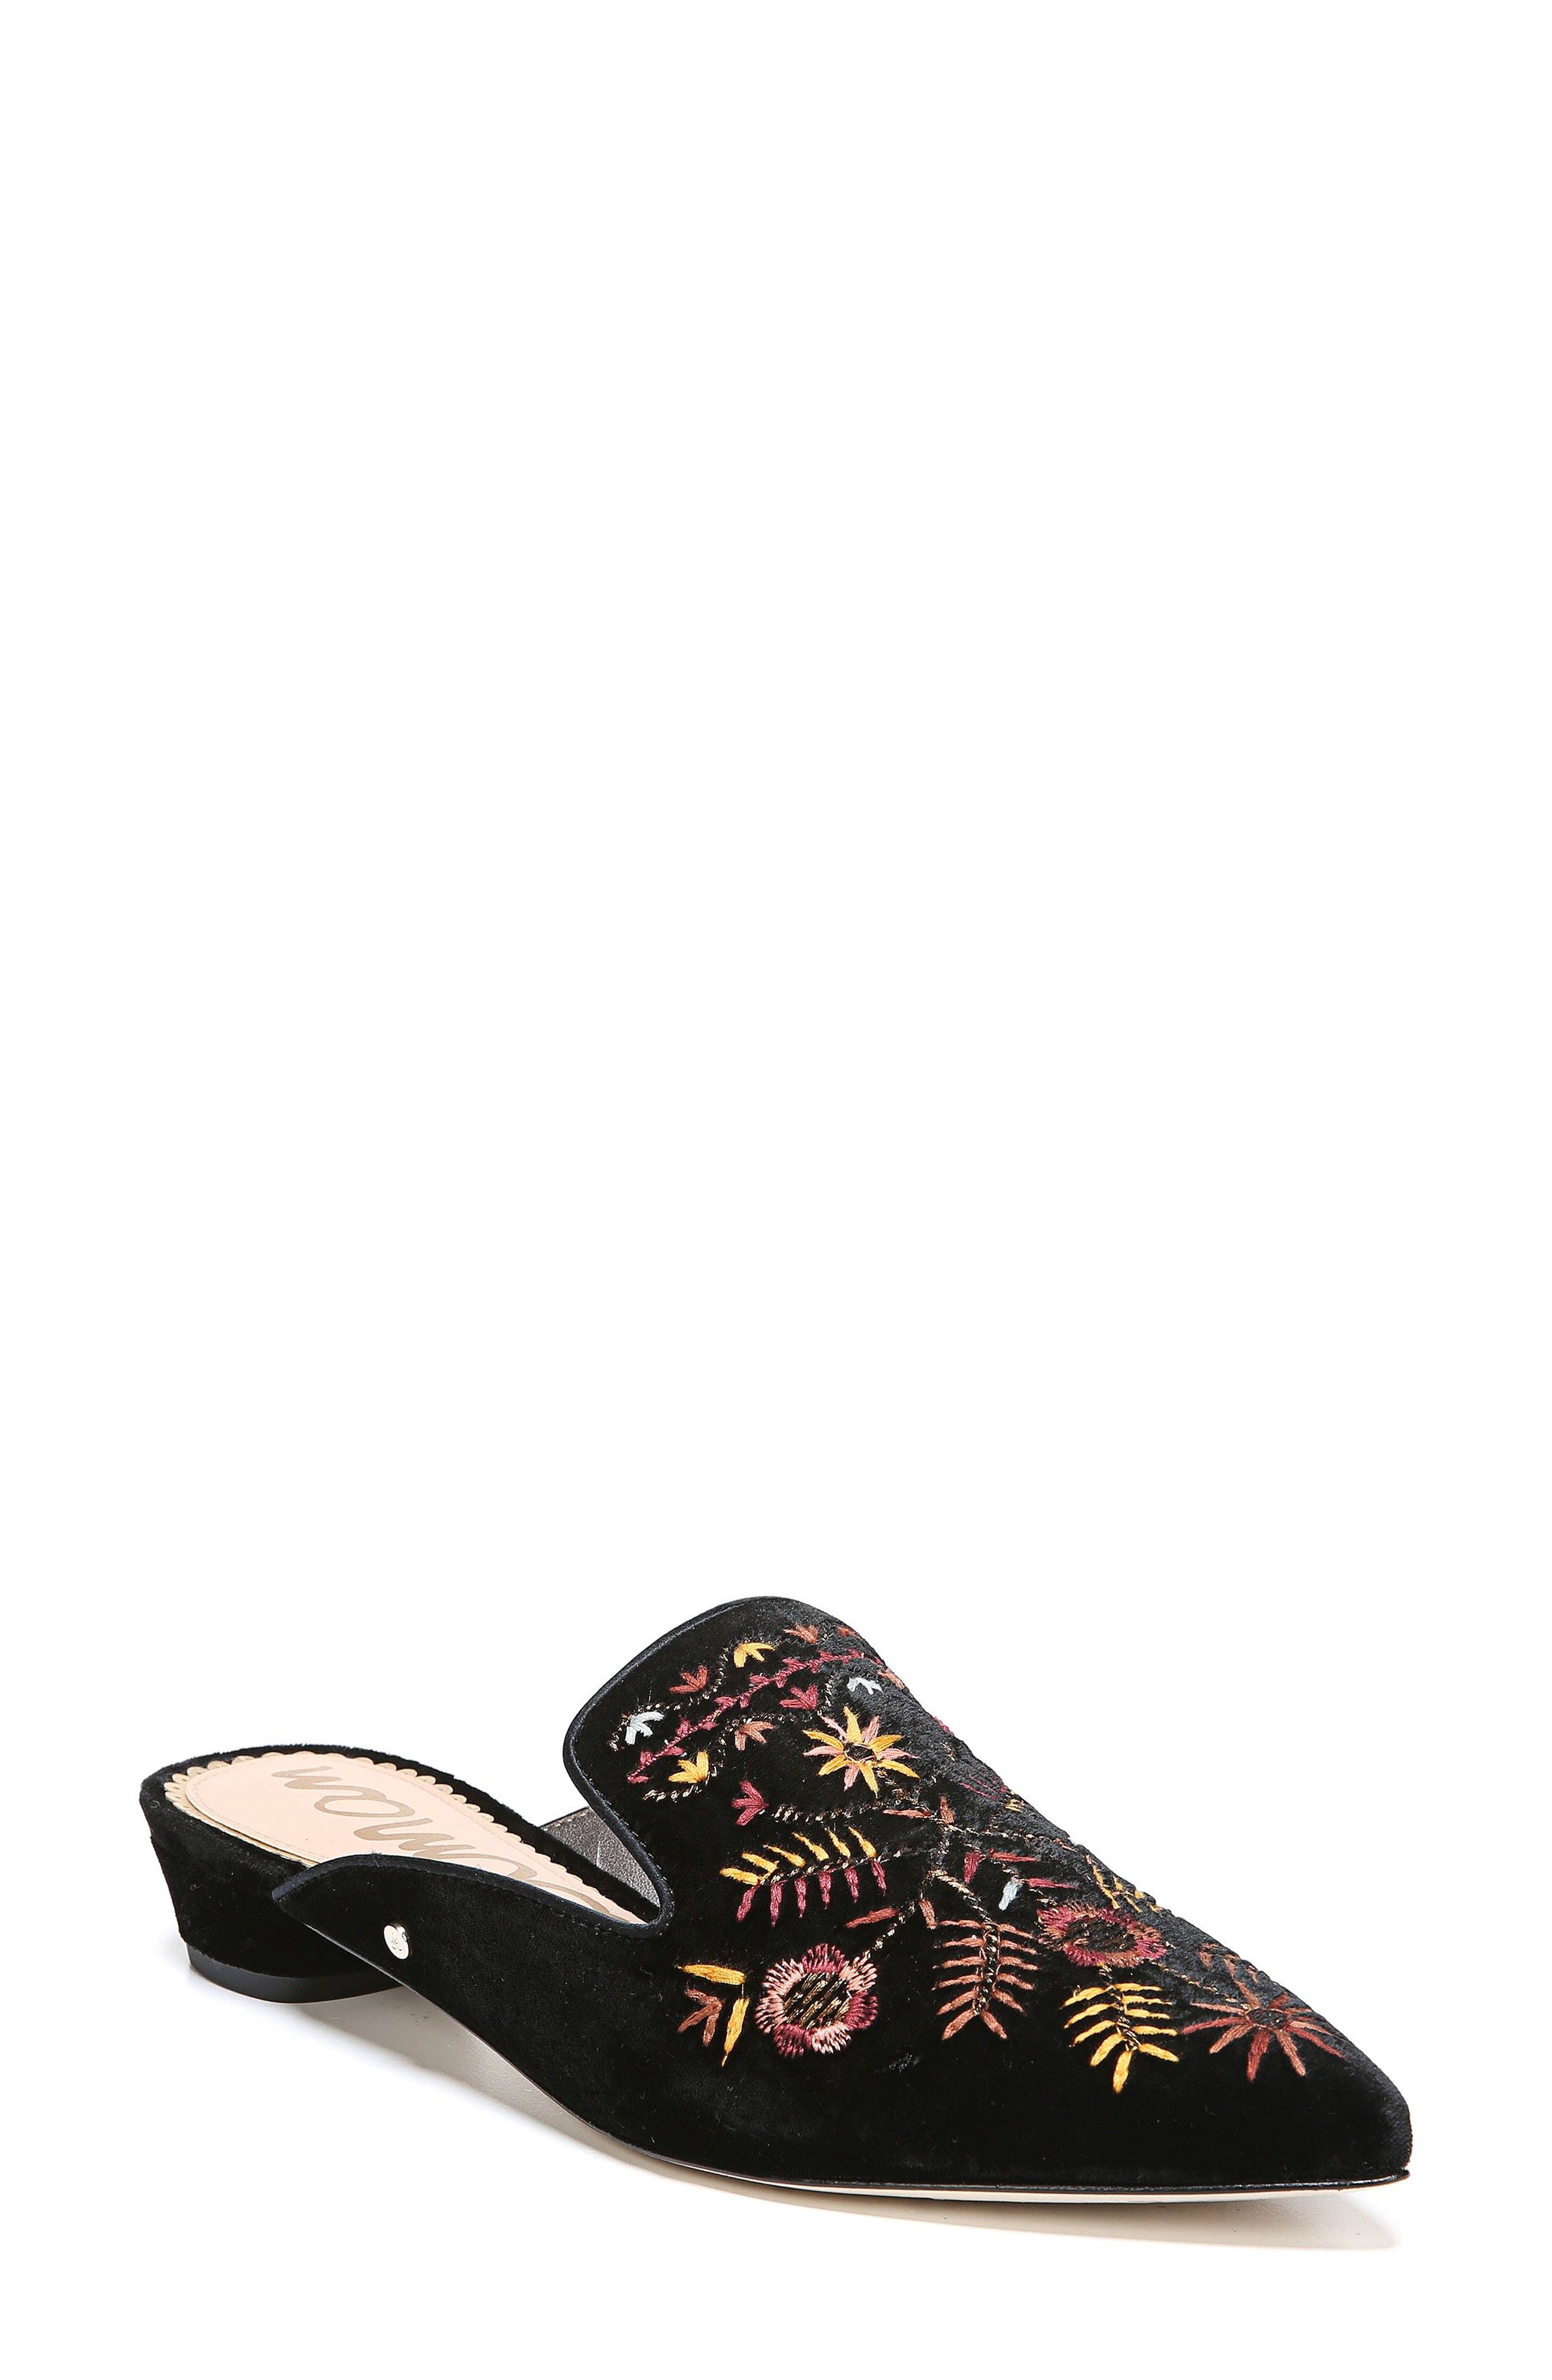 Ansley Pointy Toe Loafer Mule,                             Main thumbnail 1, color,                             001